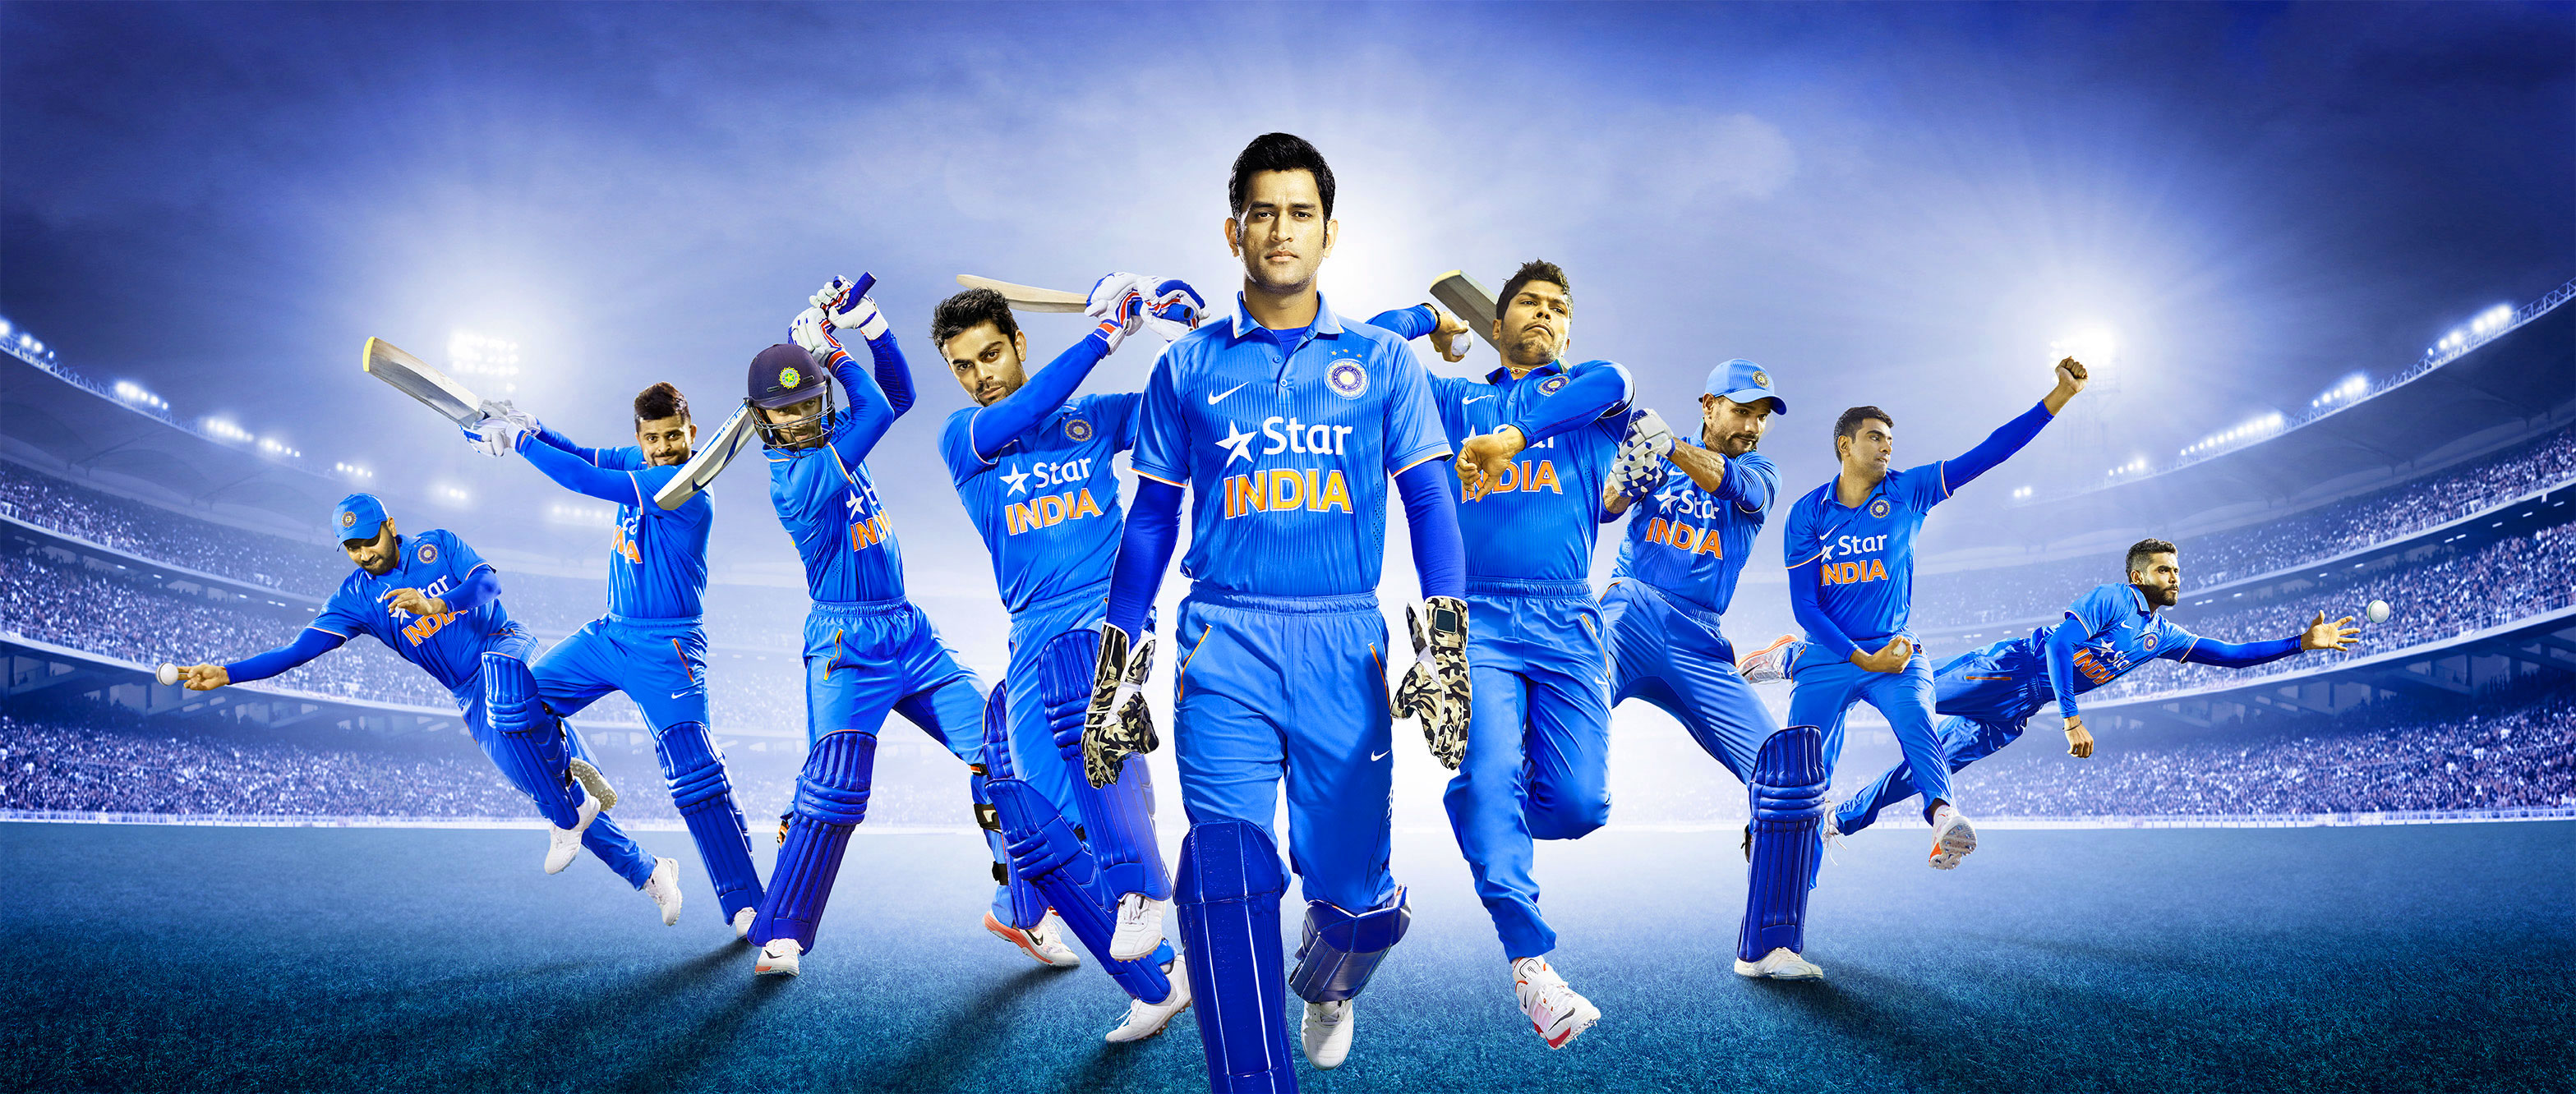 Indian Cricket Team Player Images Wallpaper Photo Pics for World 3135x1332